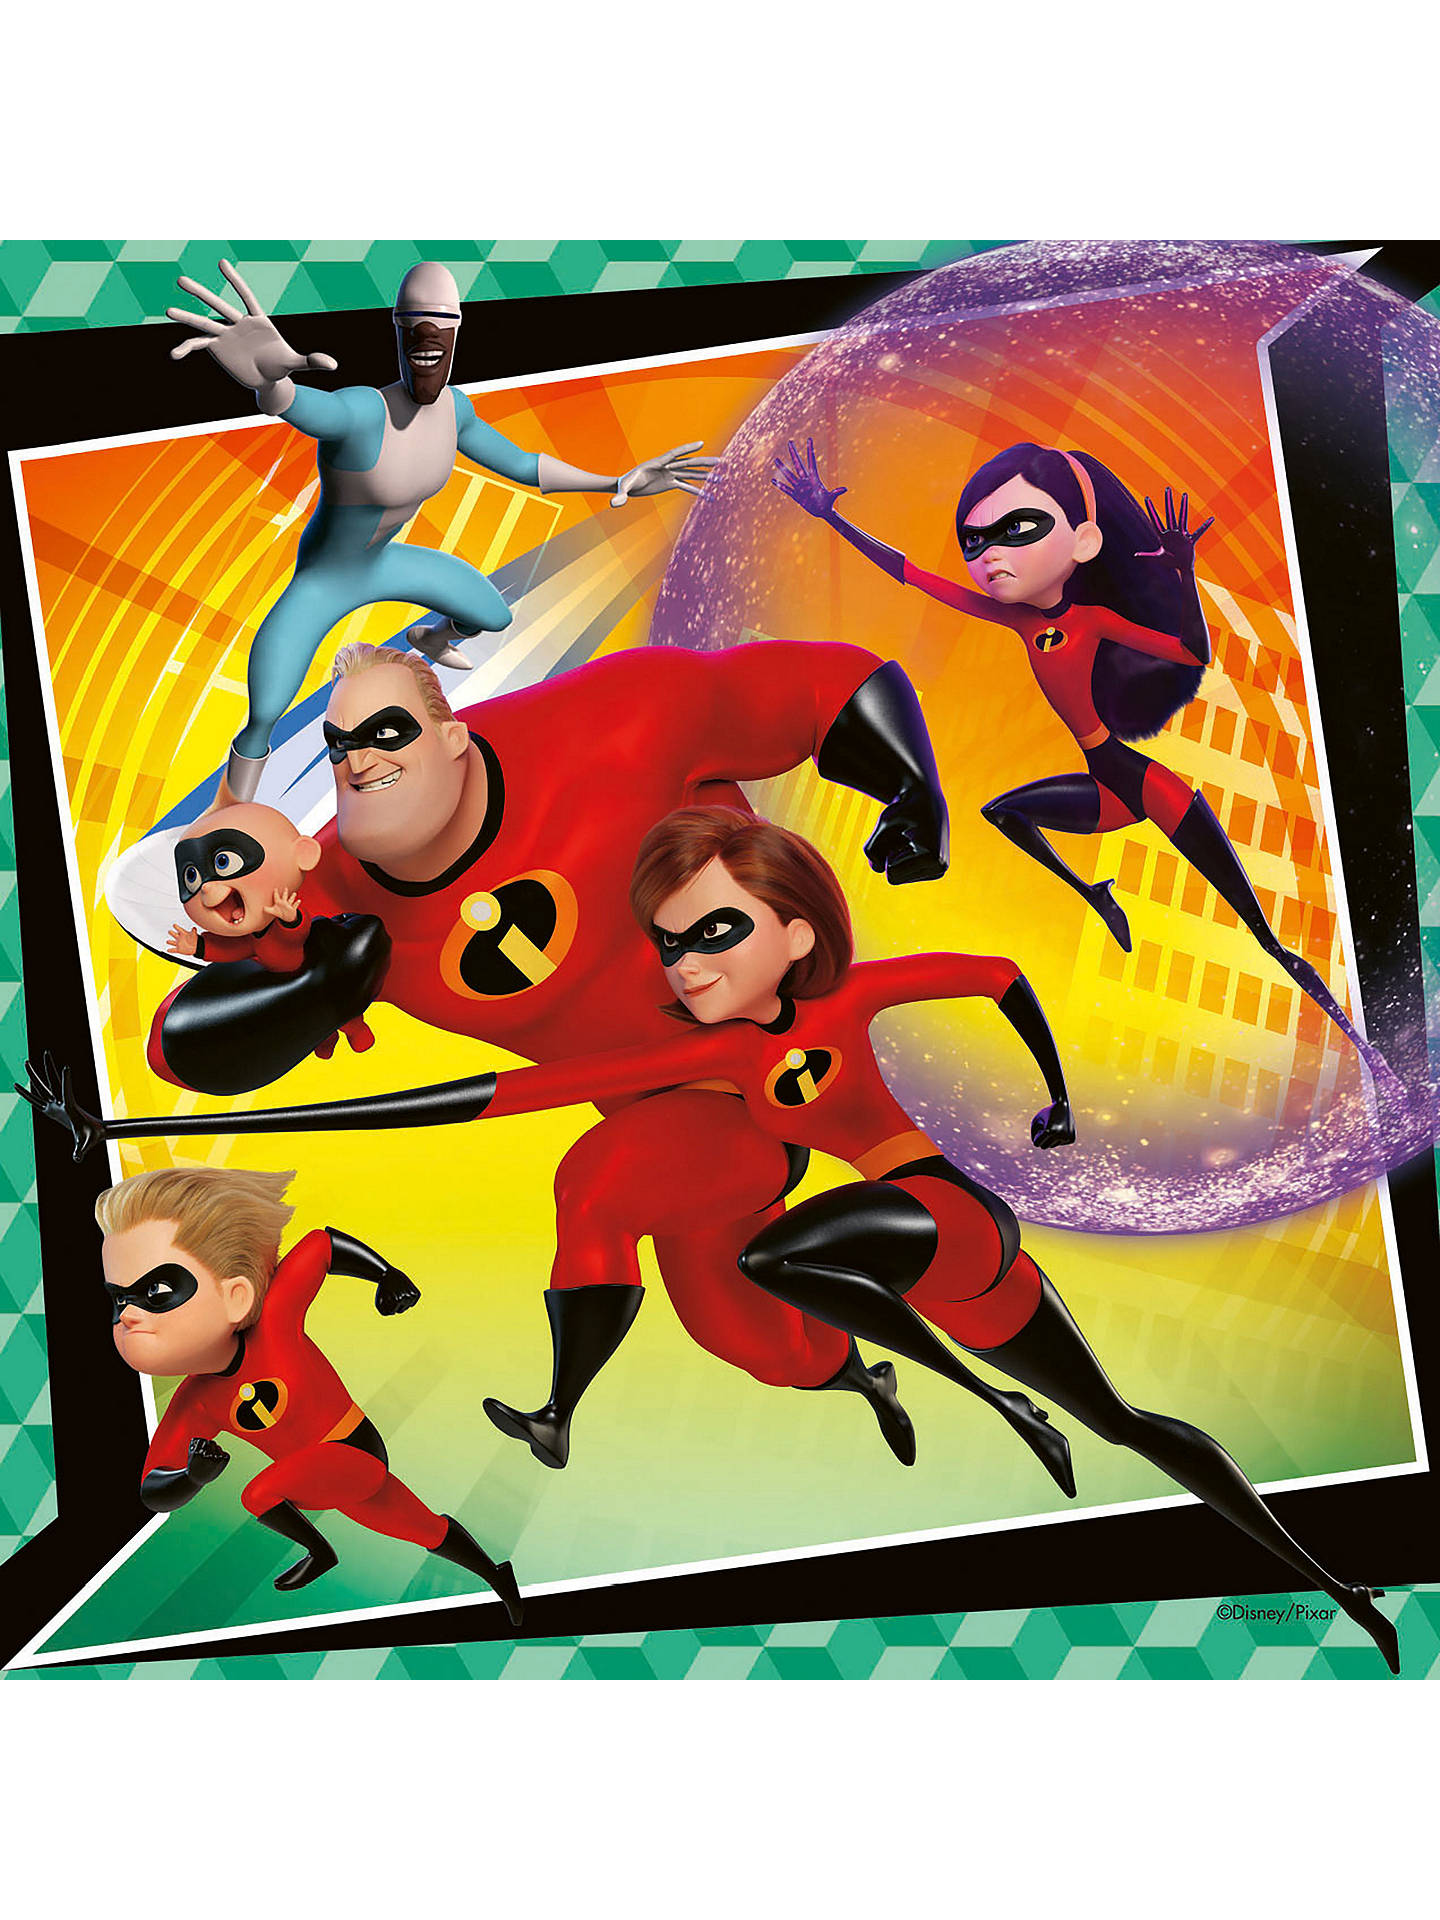 BuyRavensburger Incredibles 2 Jigsaw Puzzles Set, 3x49 Pieces Online at johnlewis.com